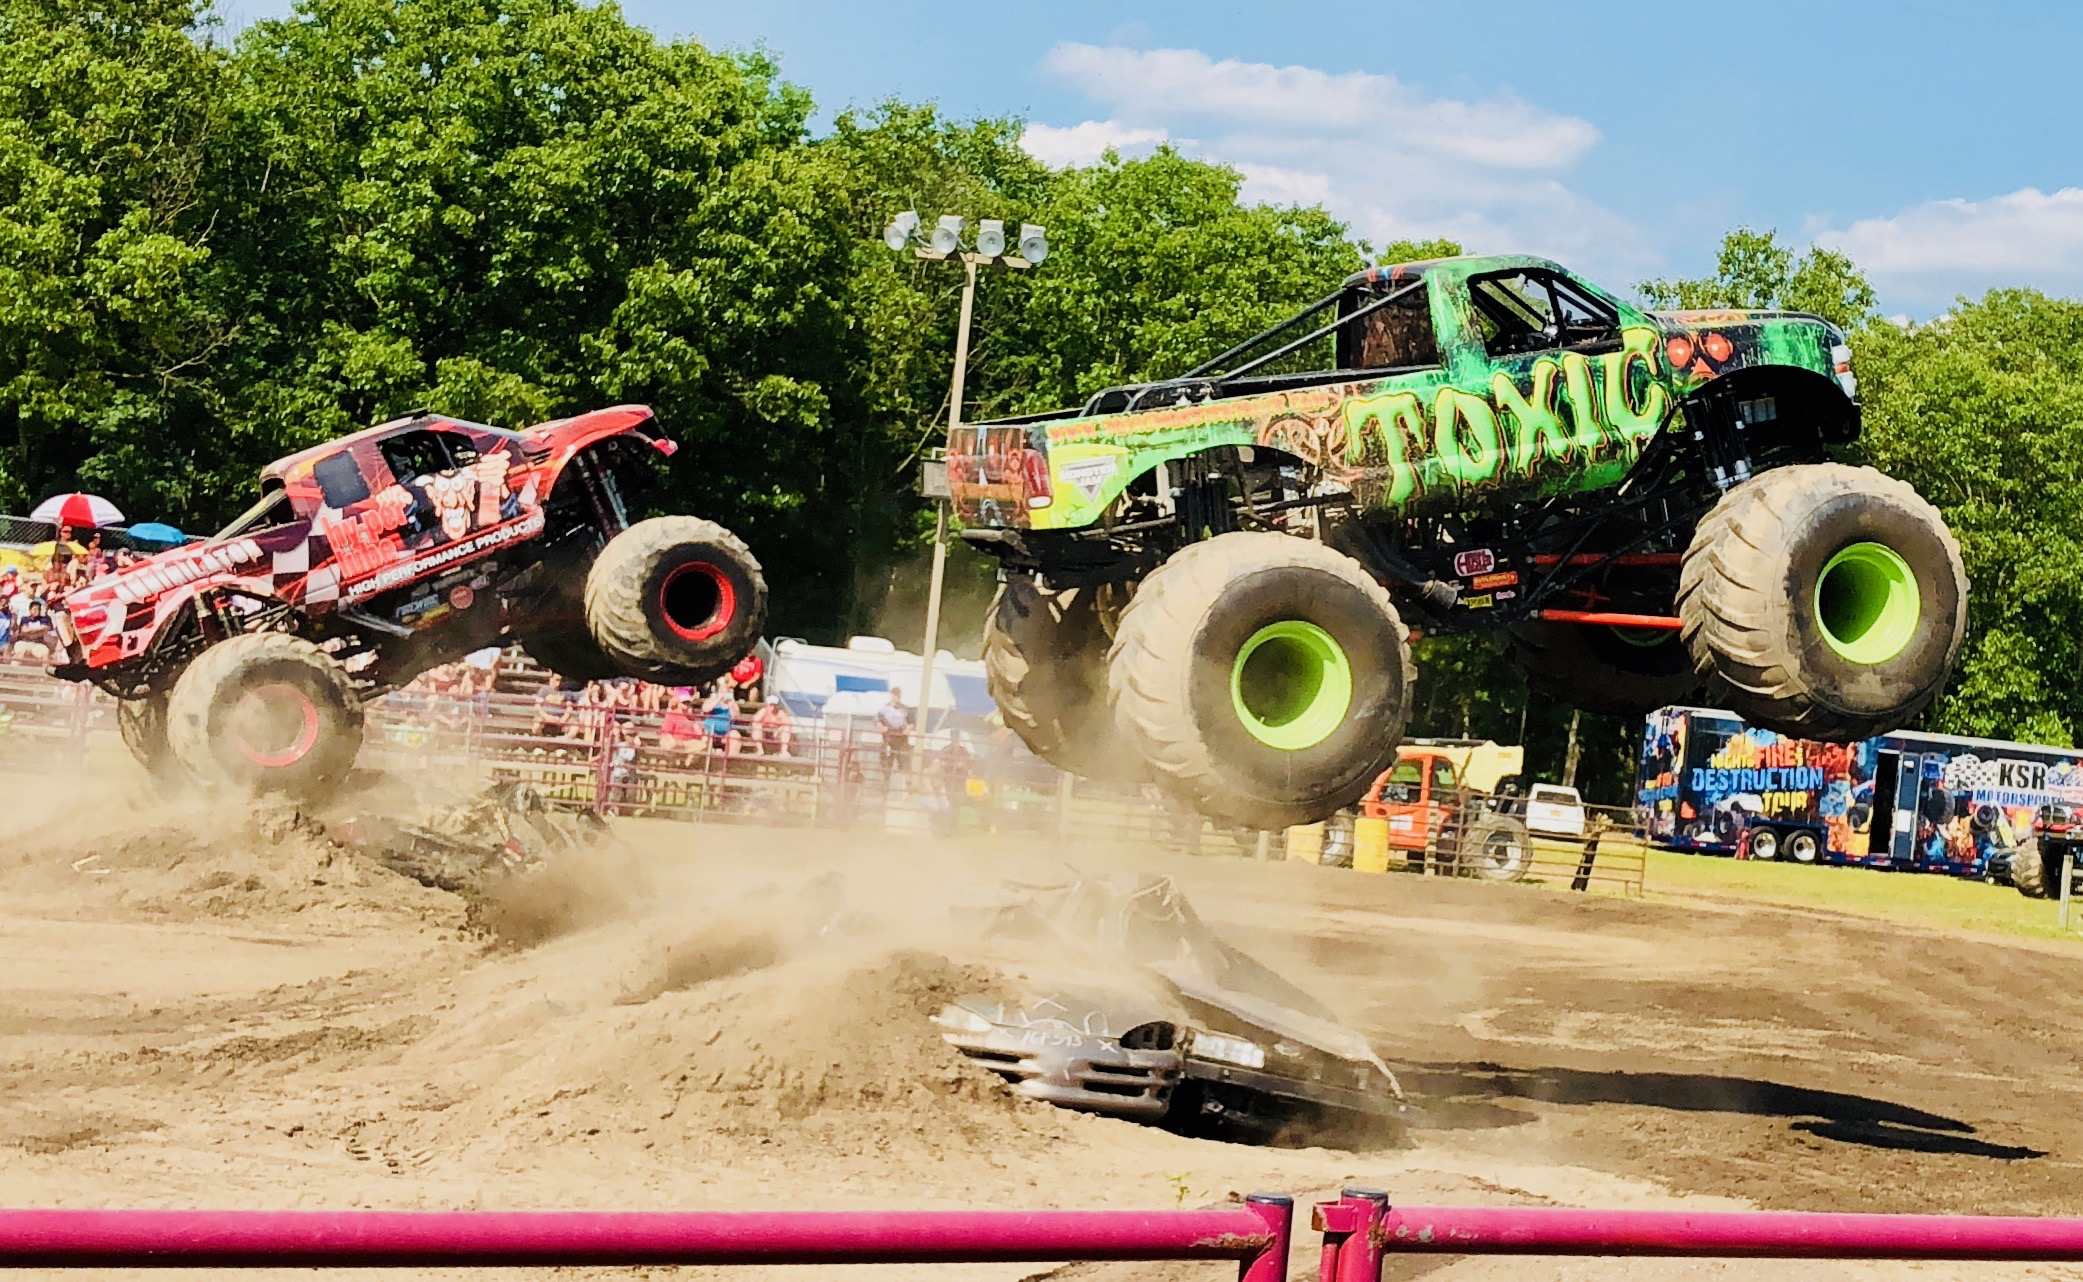 Tickets For Miller Farms Annual Monster Truck Show In Berlin From Showclix